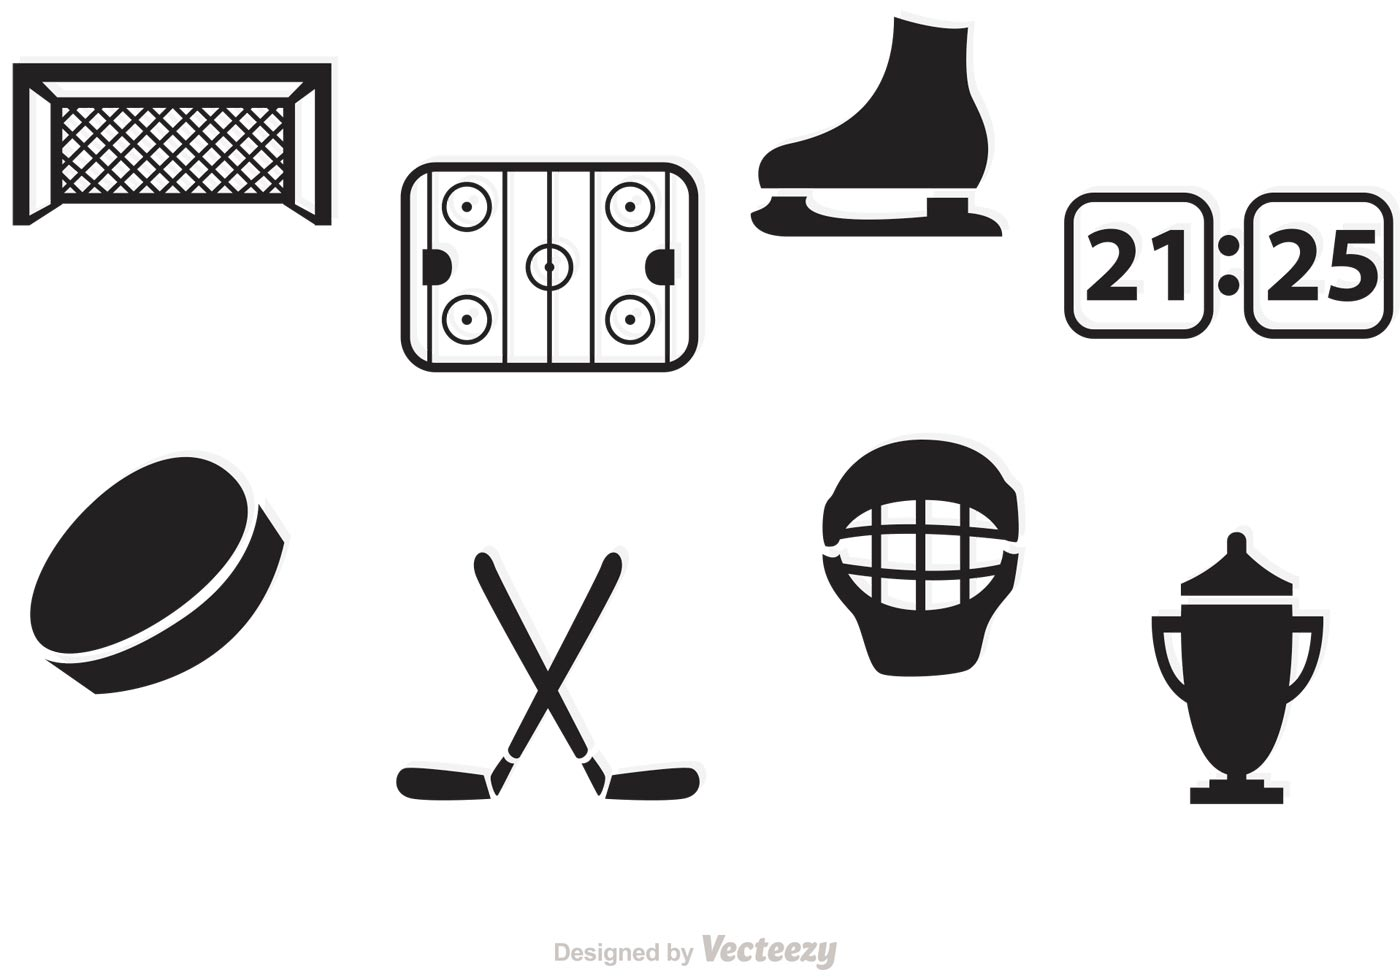 Crossed Hockey Sticks Vector At Vectorified